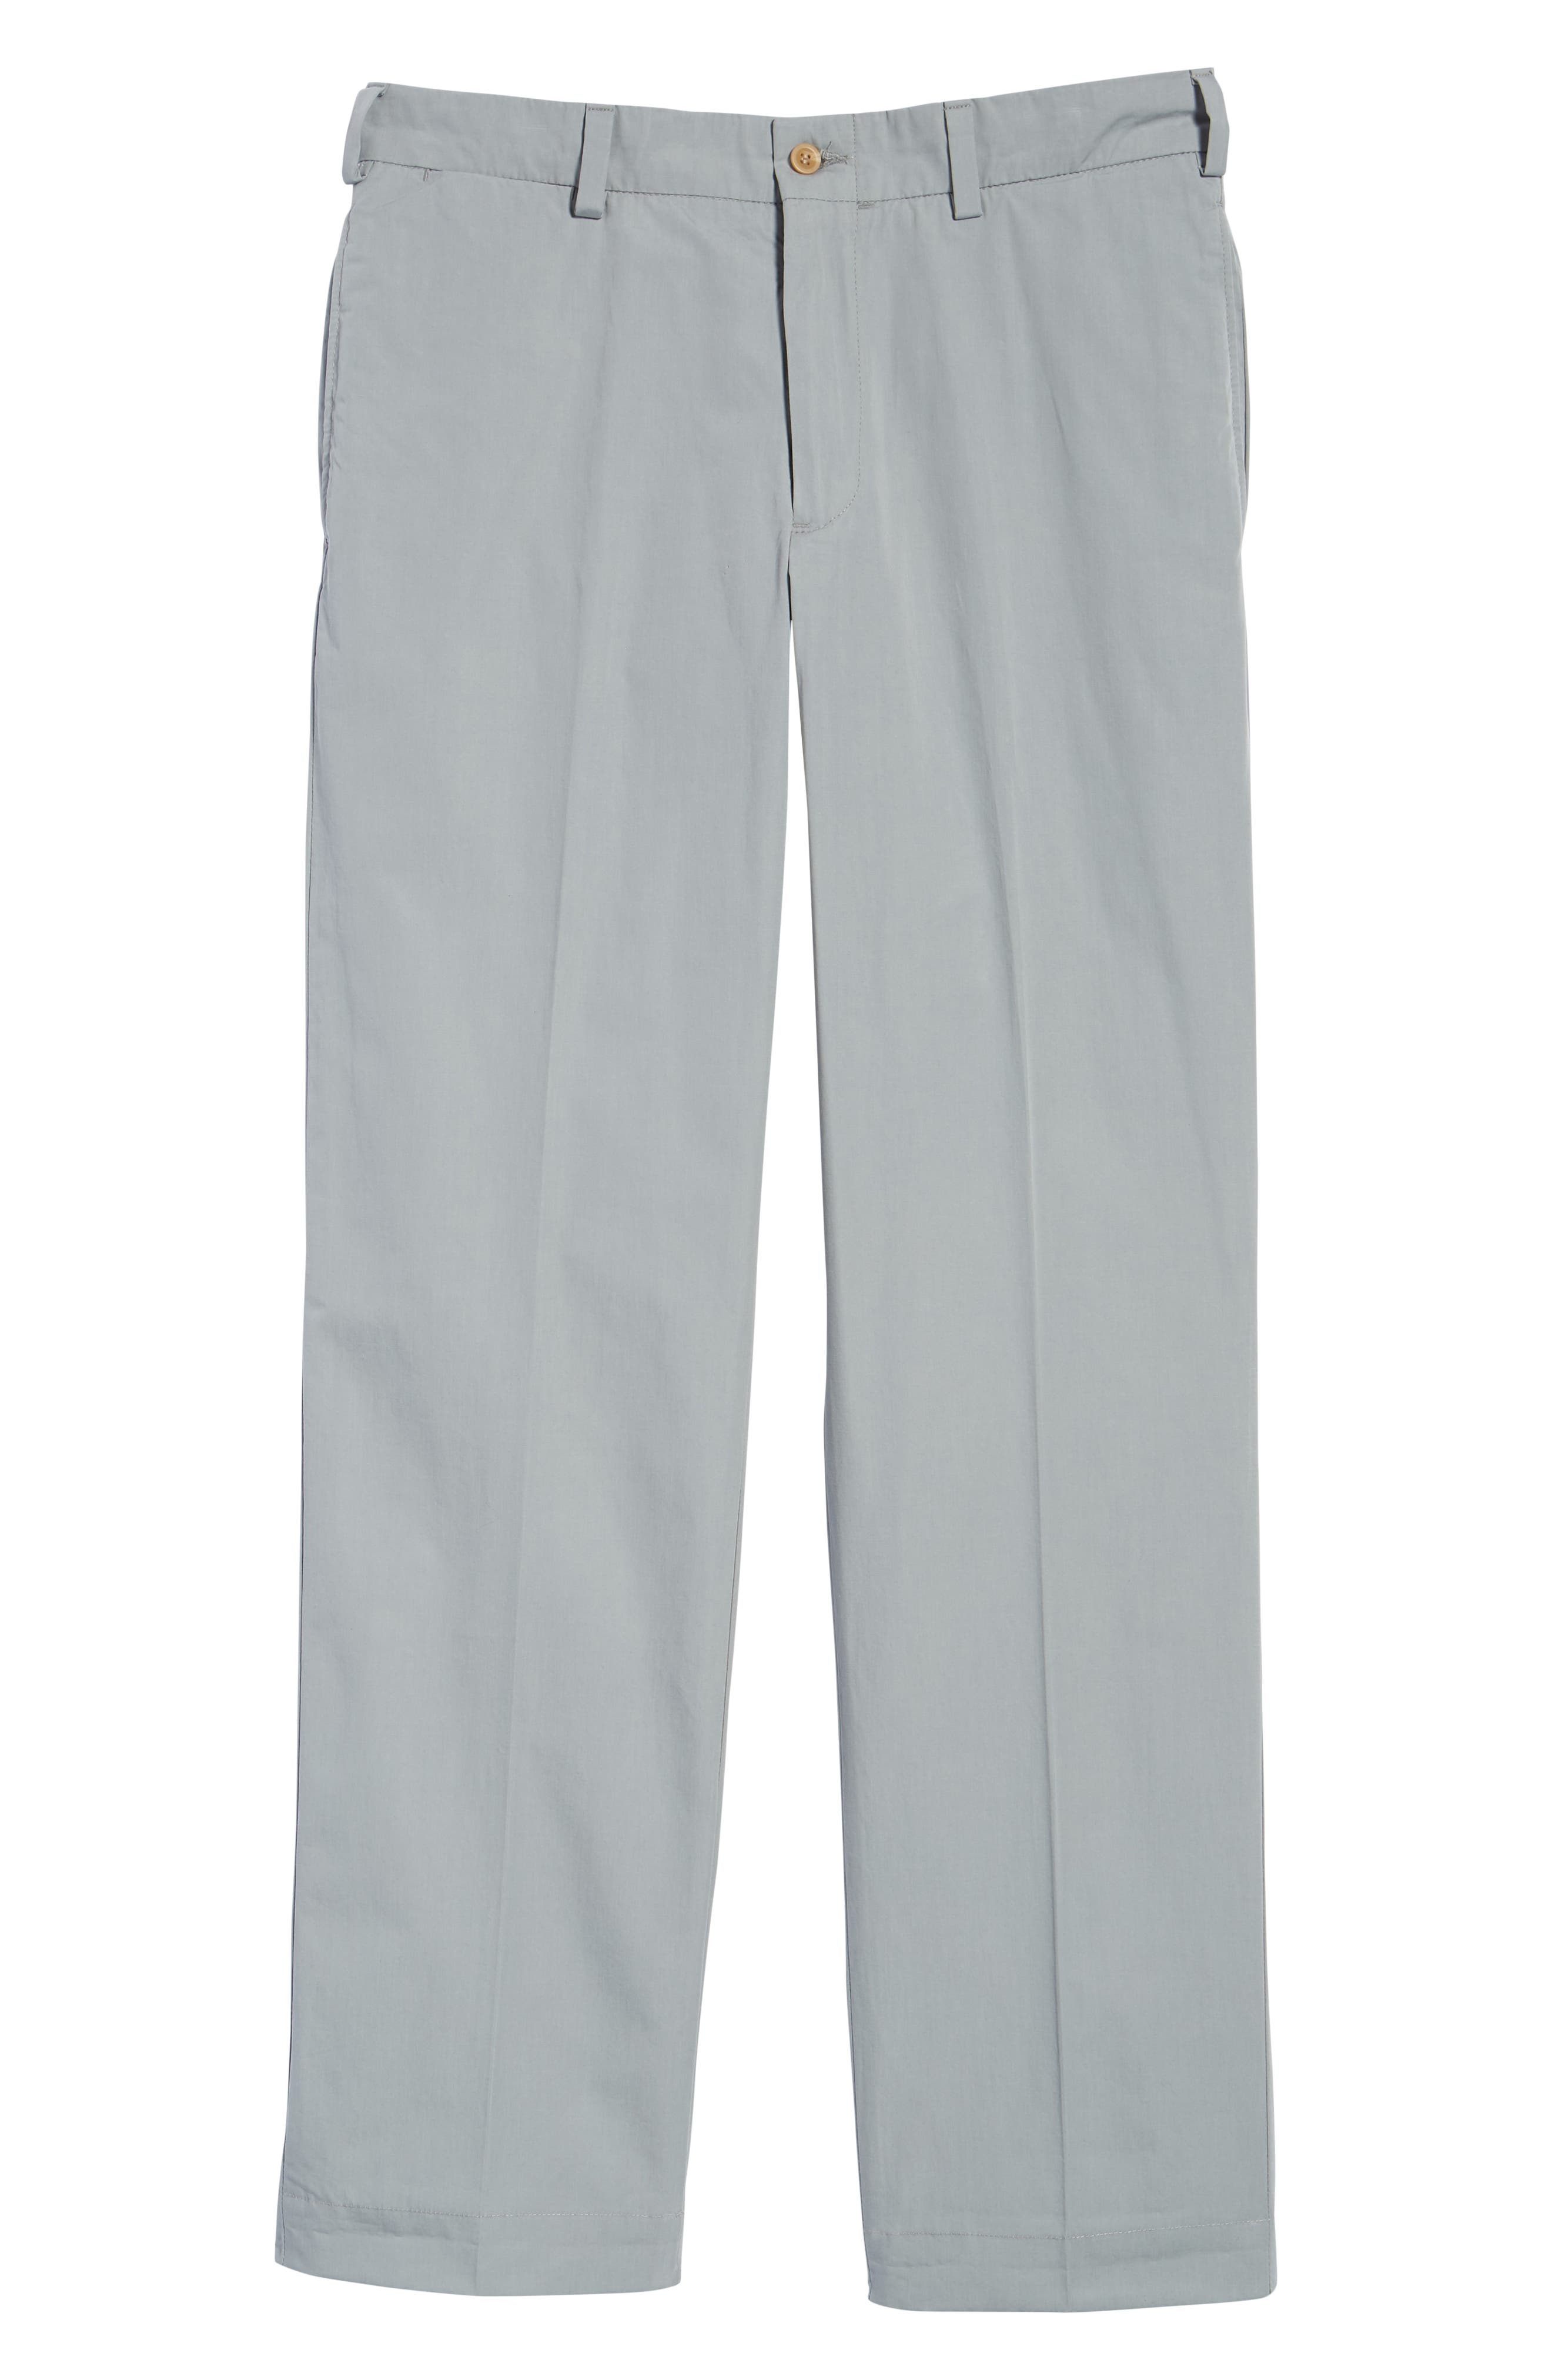 Classic Fit Tropical Poplin Pants,                             Alternate thumbnail 6, color,                             NICKEL